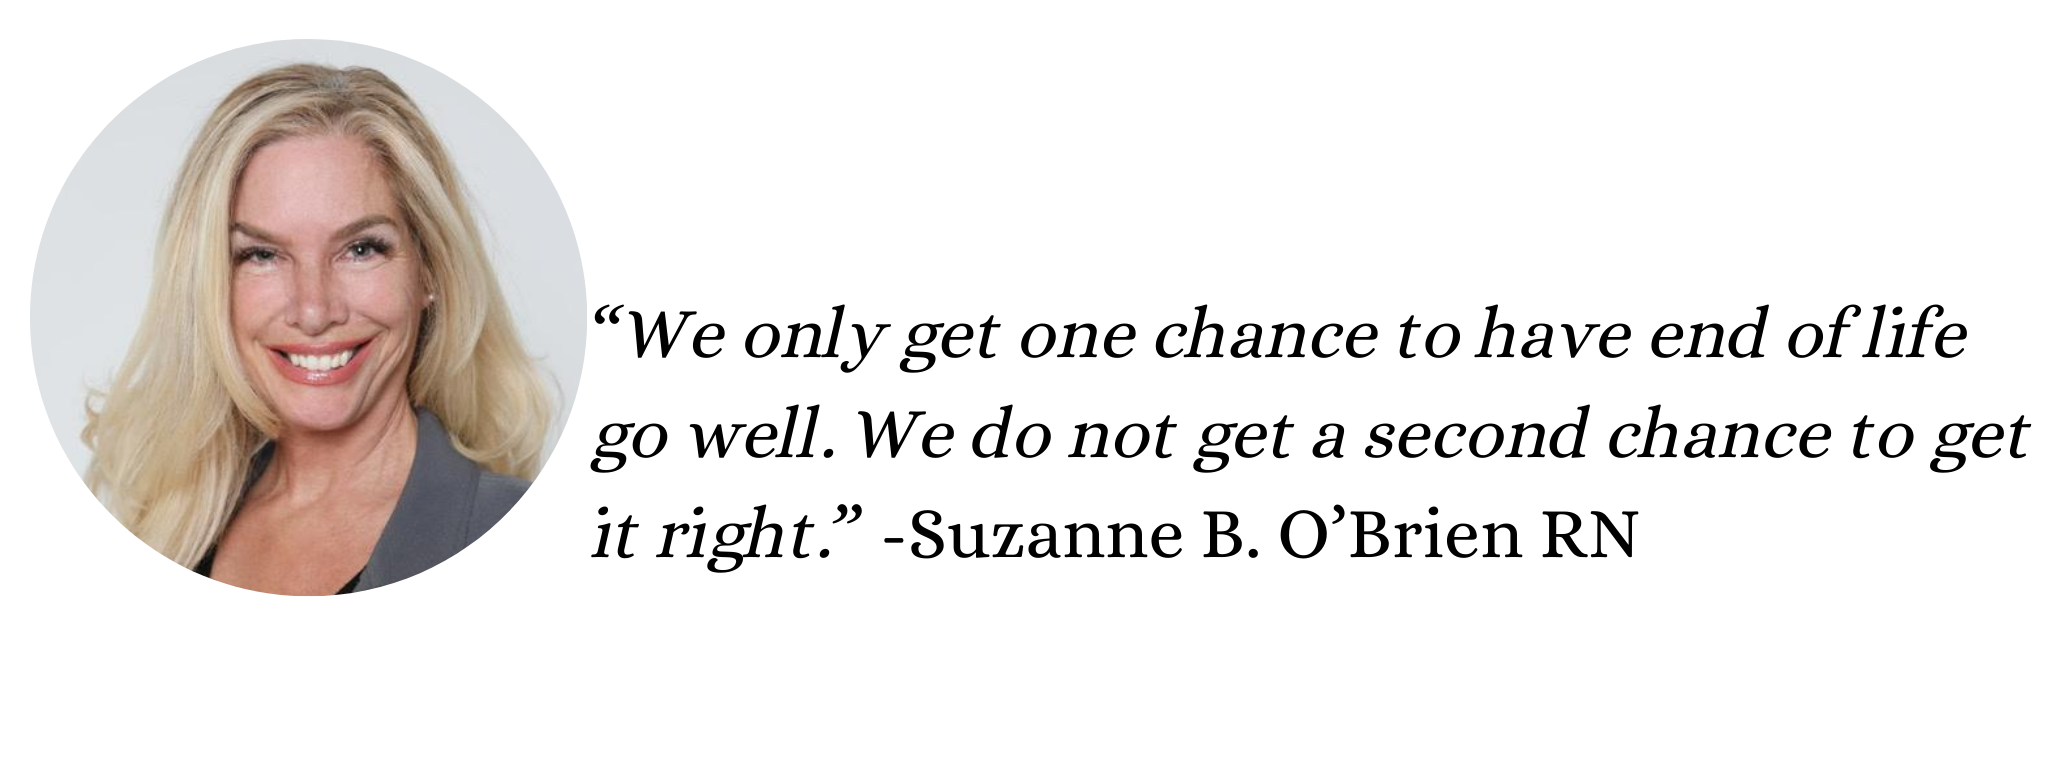 we only get one chance to go well. We do not get a second time to get it right quote from Suzanne B O'Brien